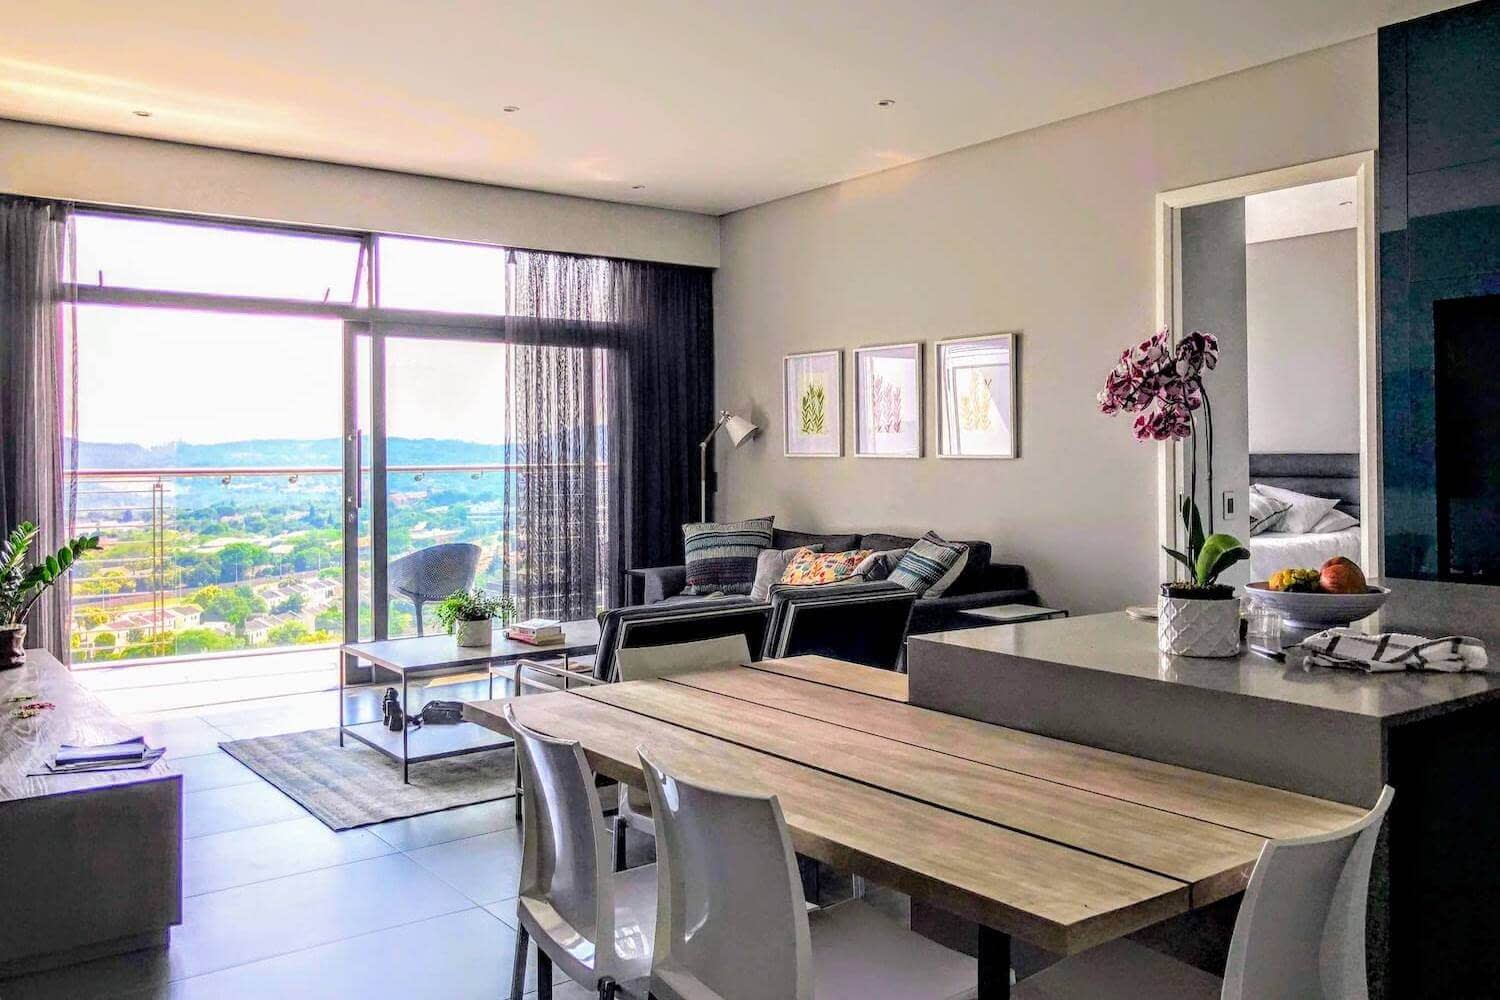 House Builders Pretoria - Menlyn Maine living Area After